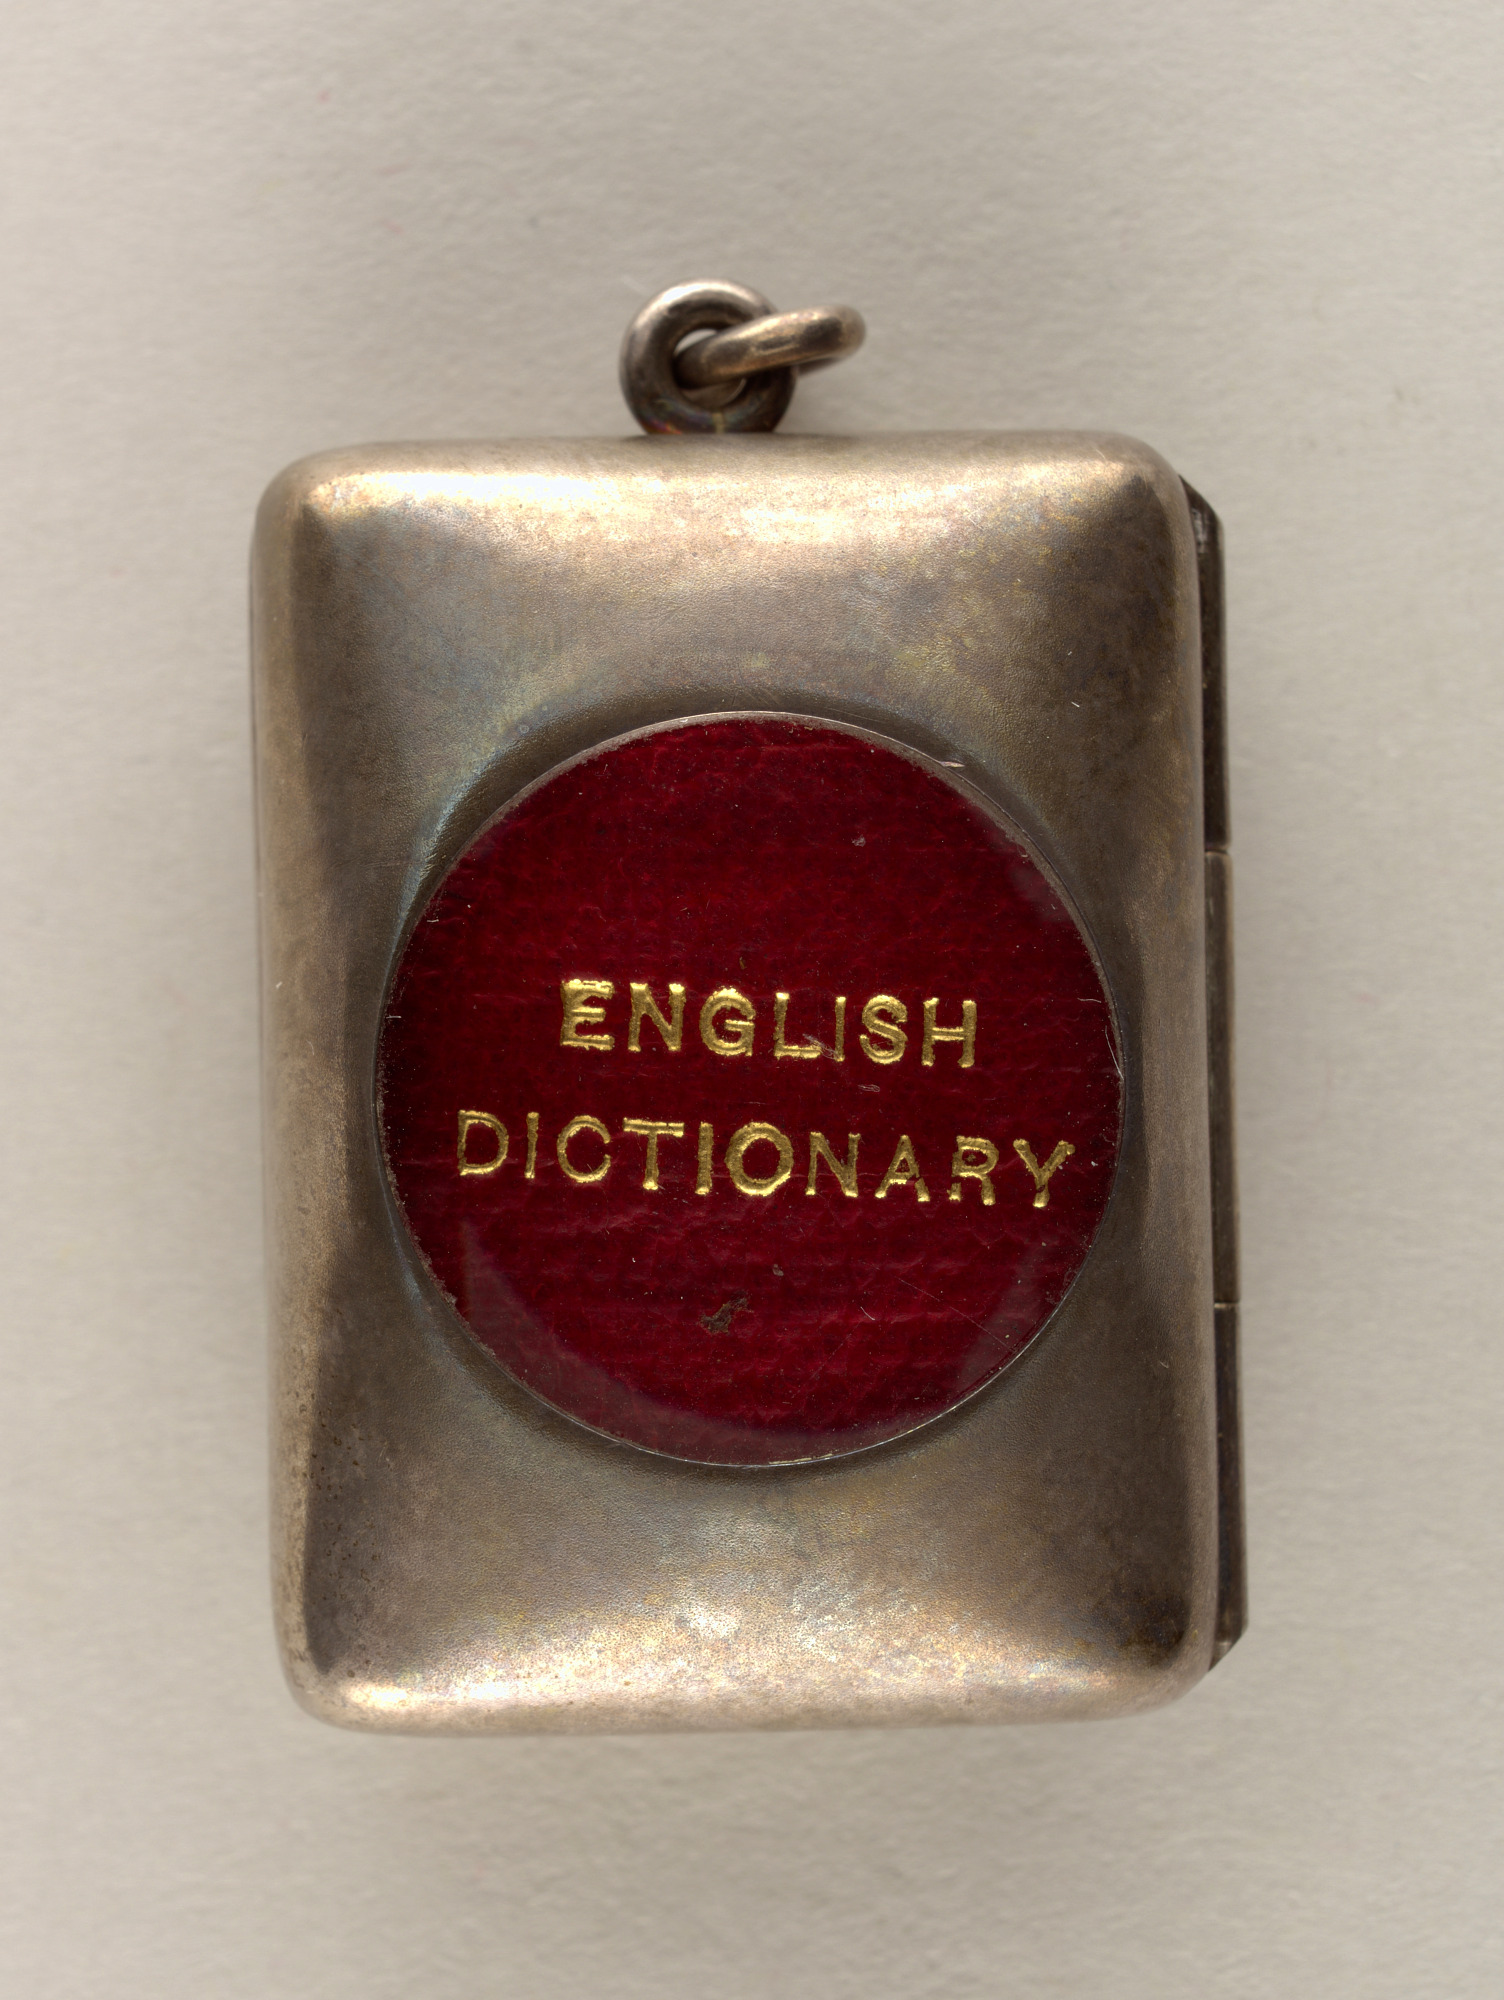 Locket with dictionary